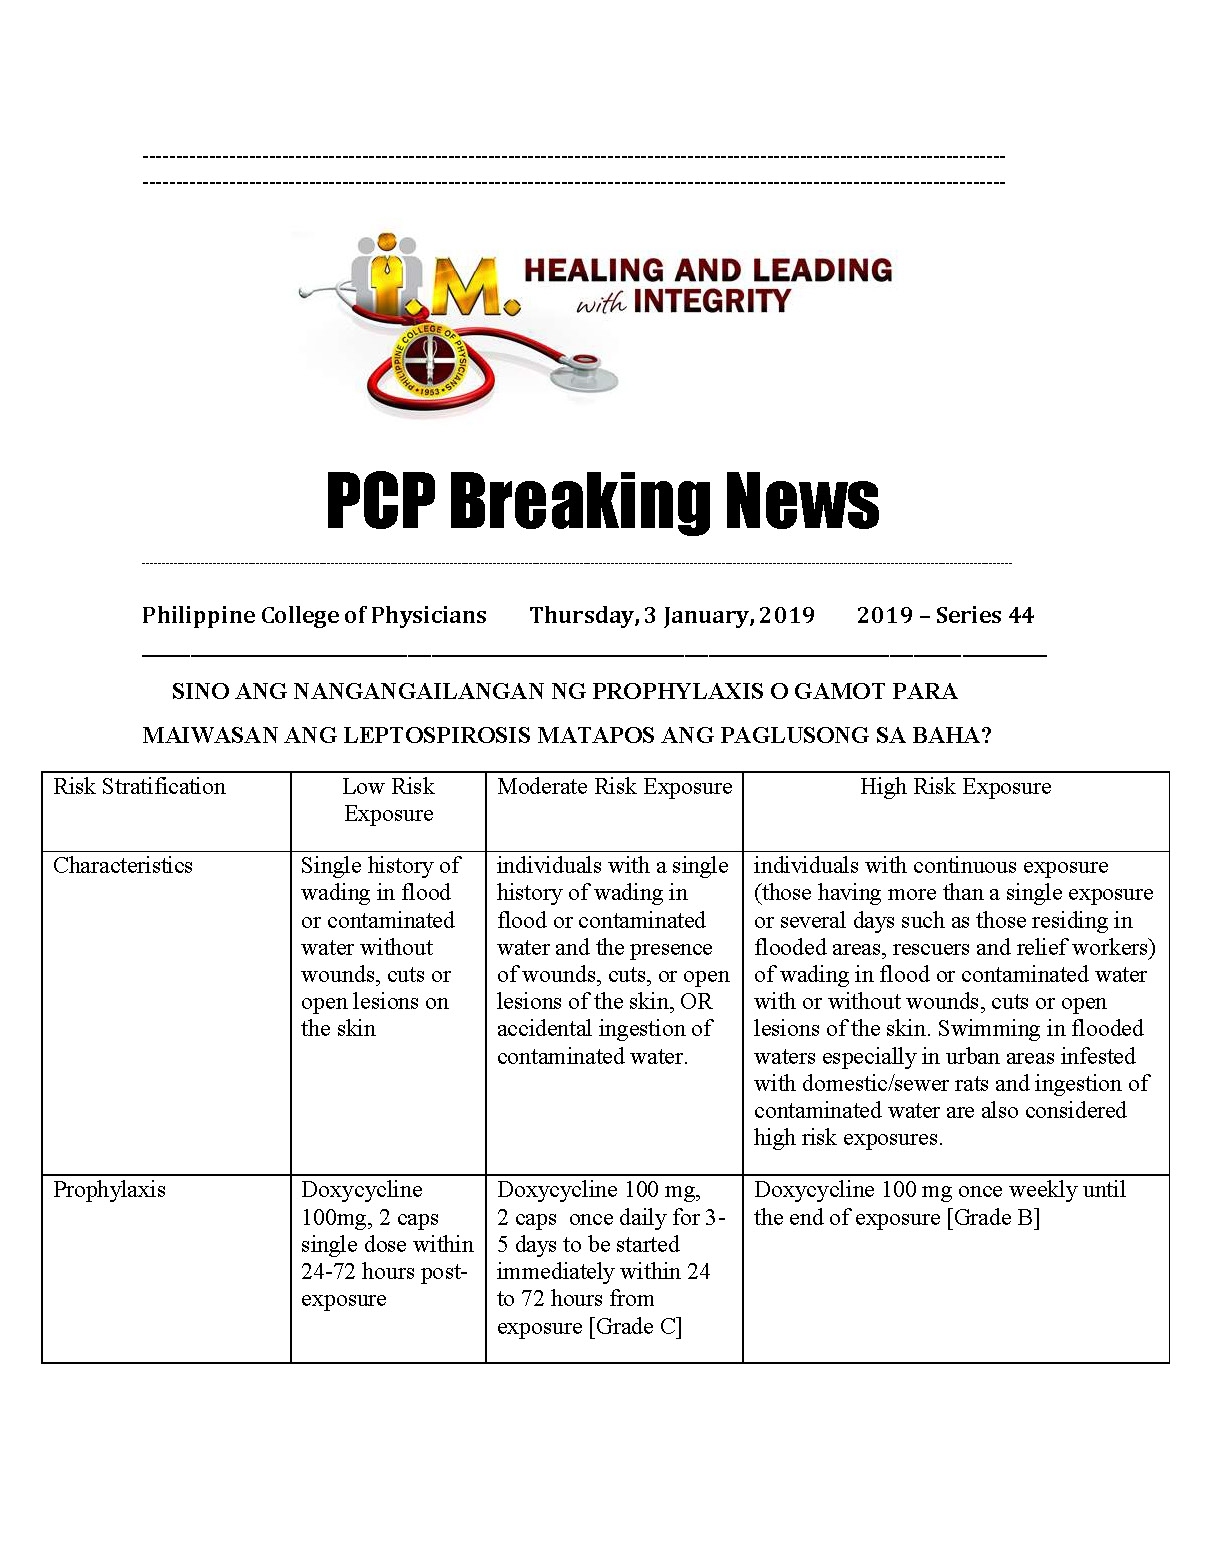 44th PCP Breaking News Leptospirosis FAQs Page 1